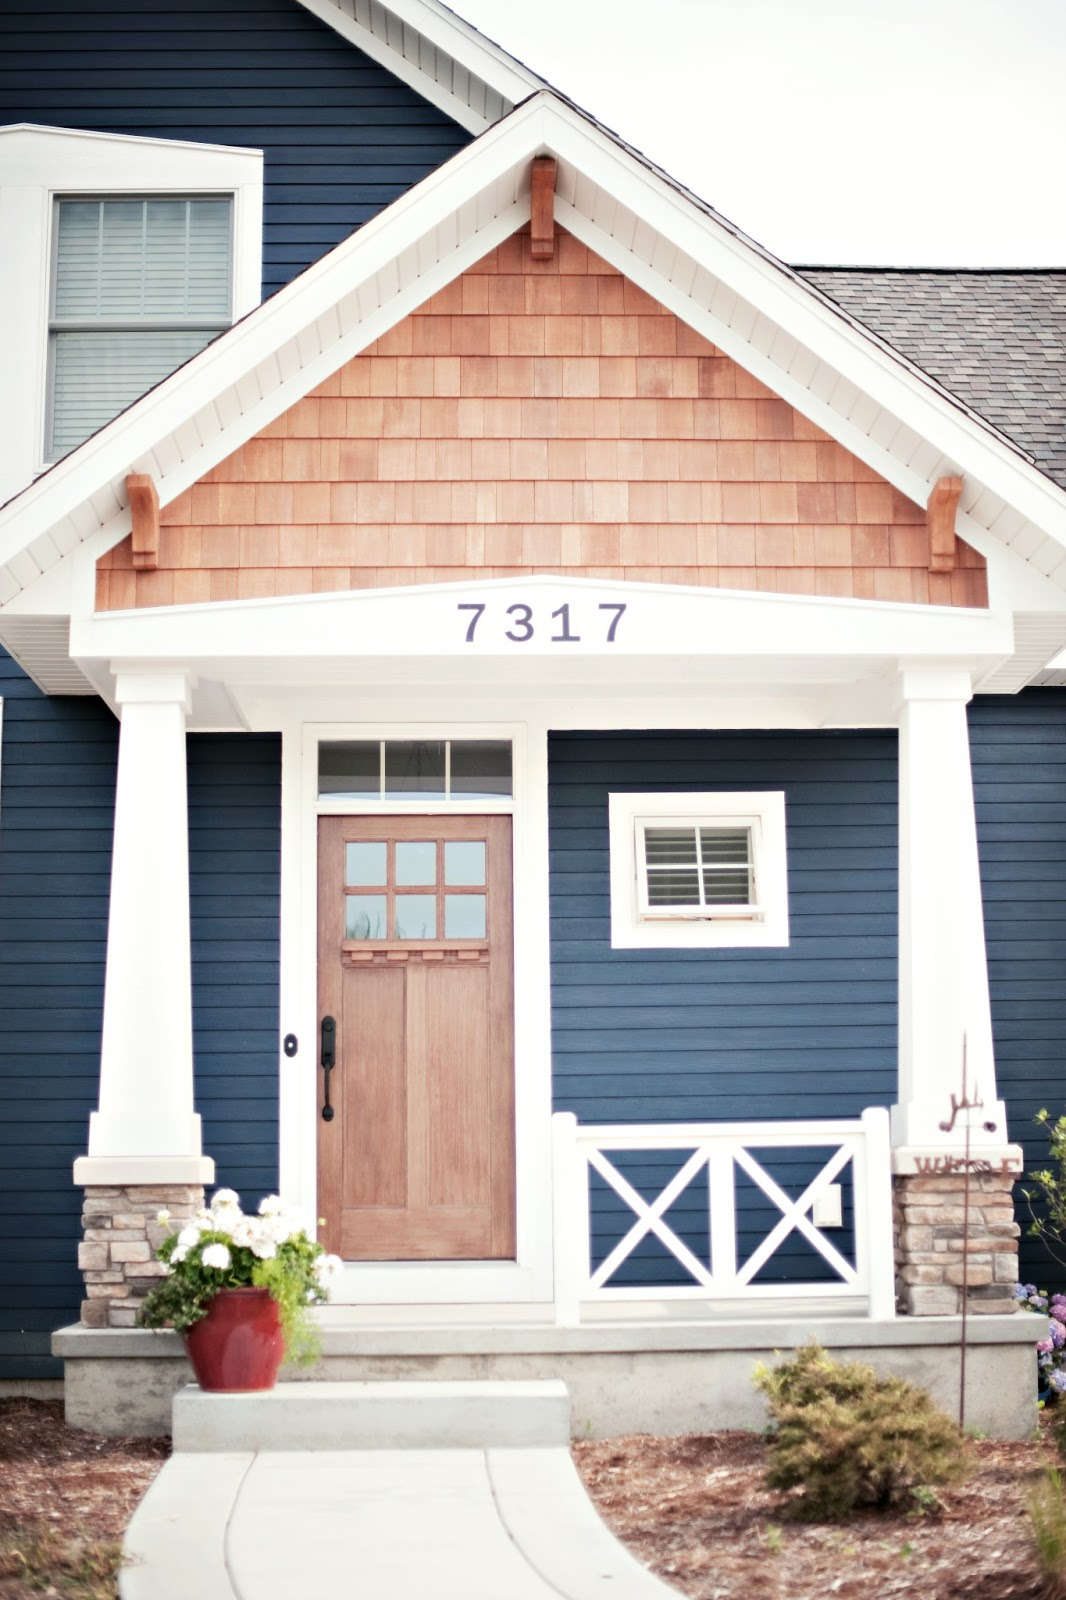 Lisa mende design best navy blue paint colors 8 of my favs for Building exterior colour